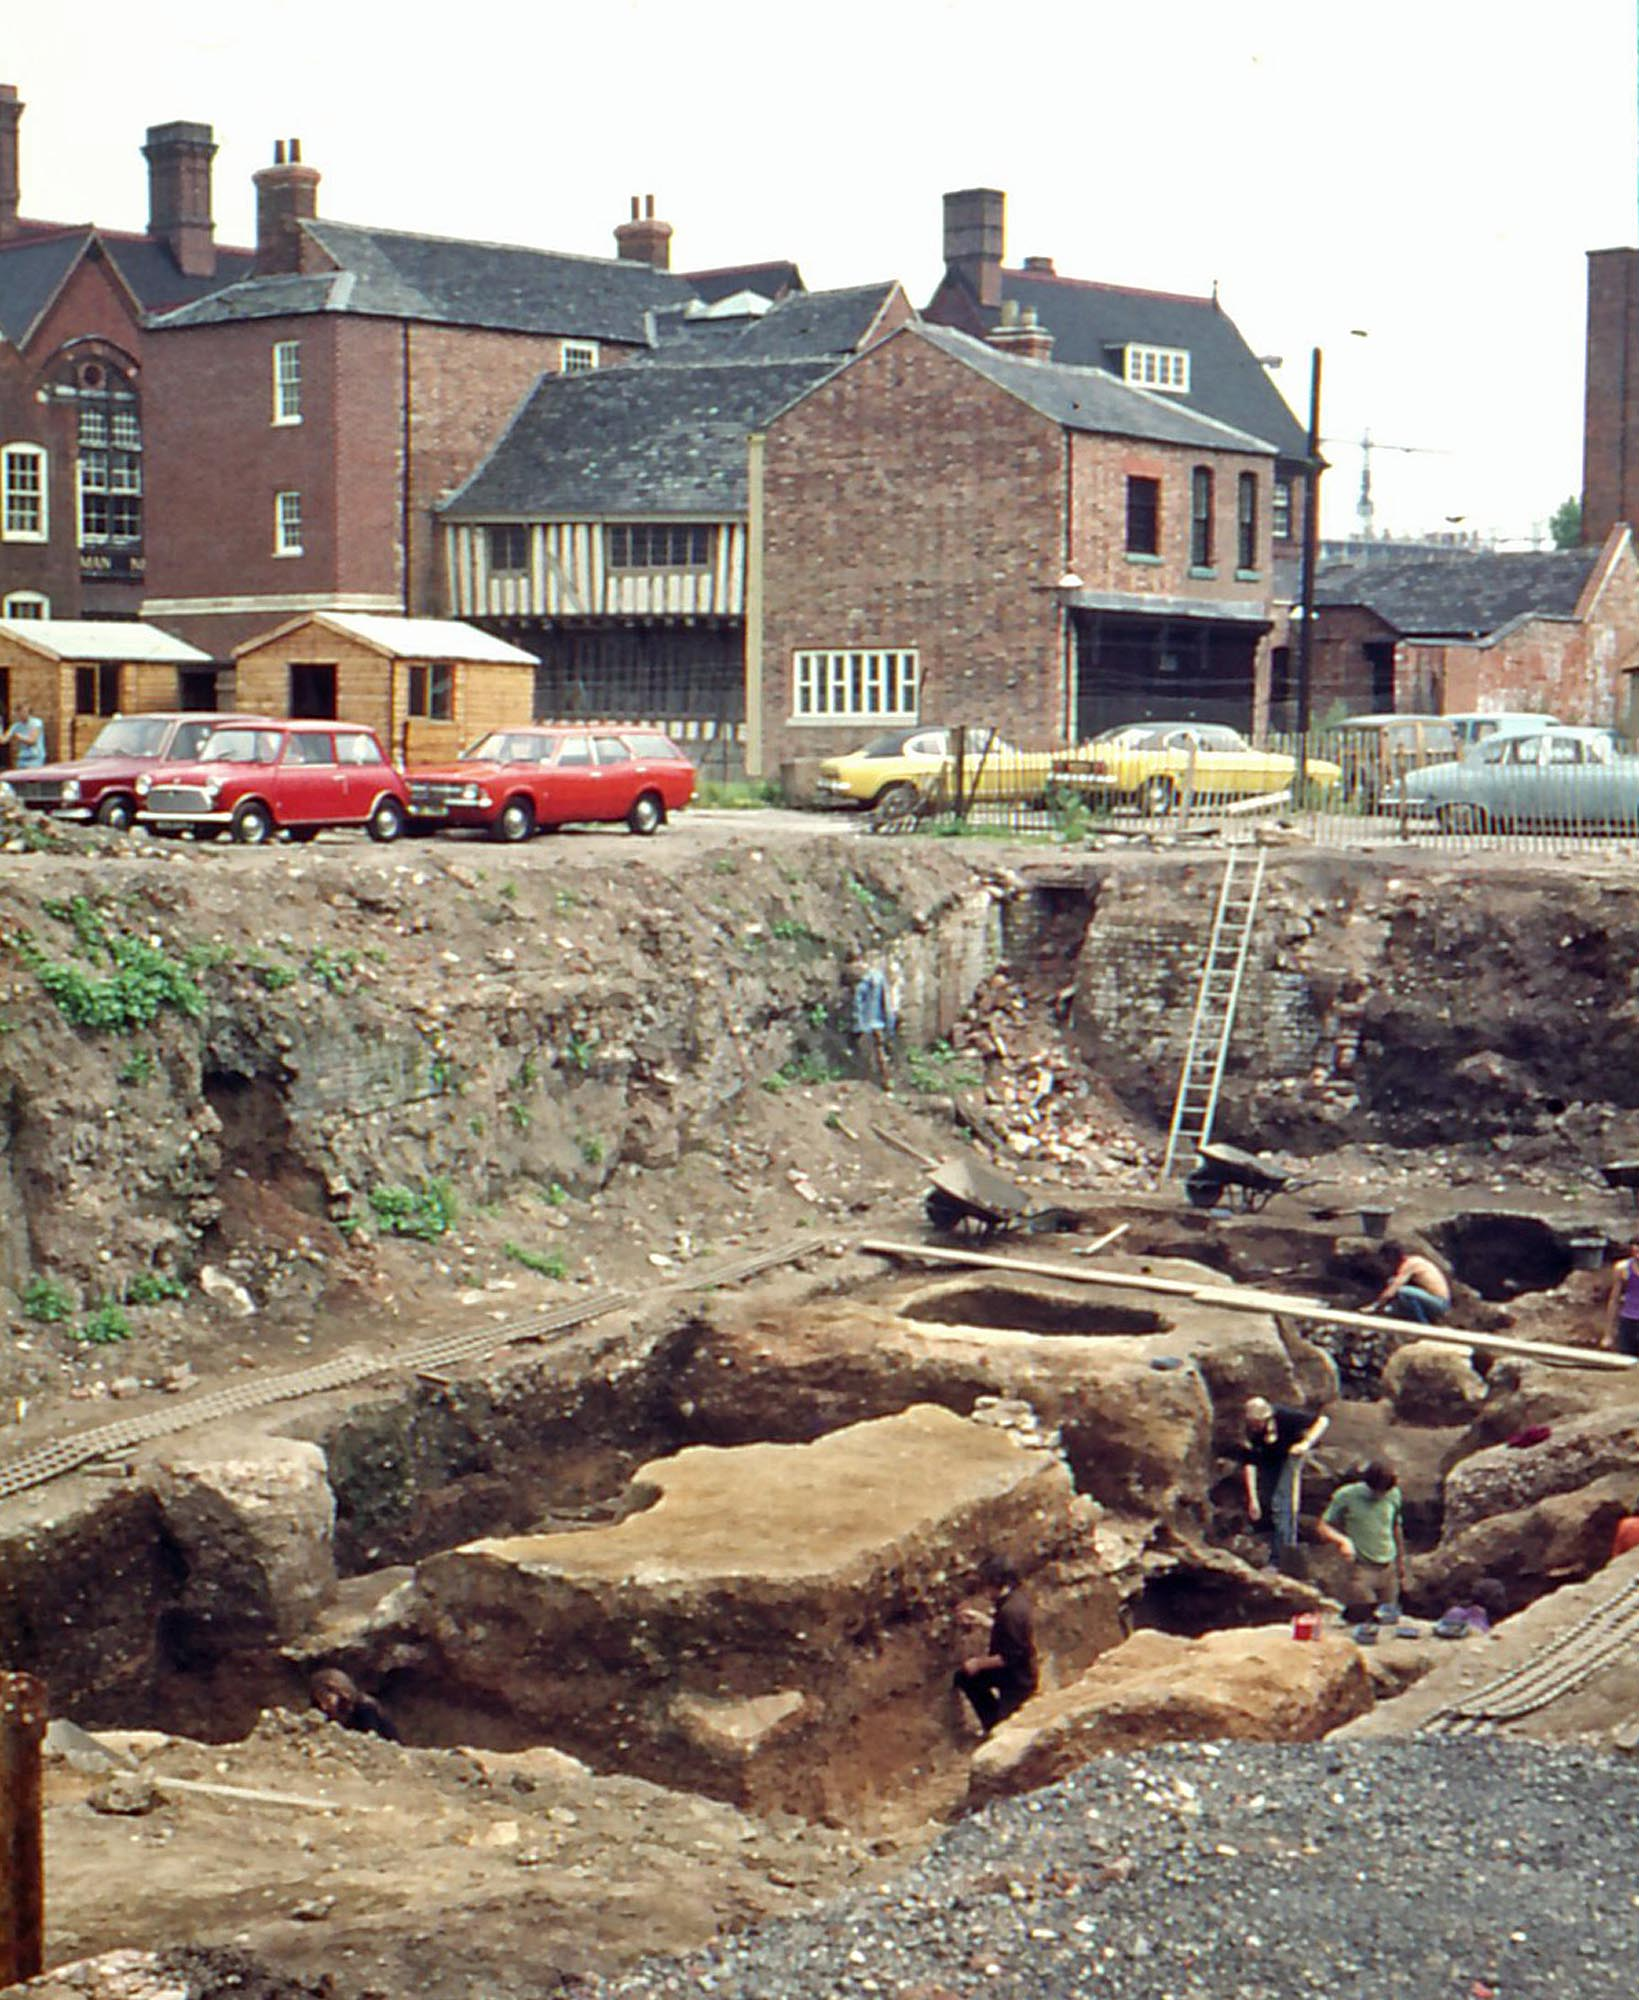 Looking south-east across the excavation of the Roman forum at St Nicholas Circle in the early 1970s. Wygston's House can be seen in the background - University of Leicester Archaeological Services